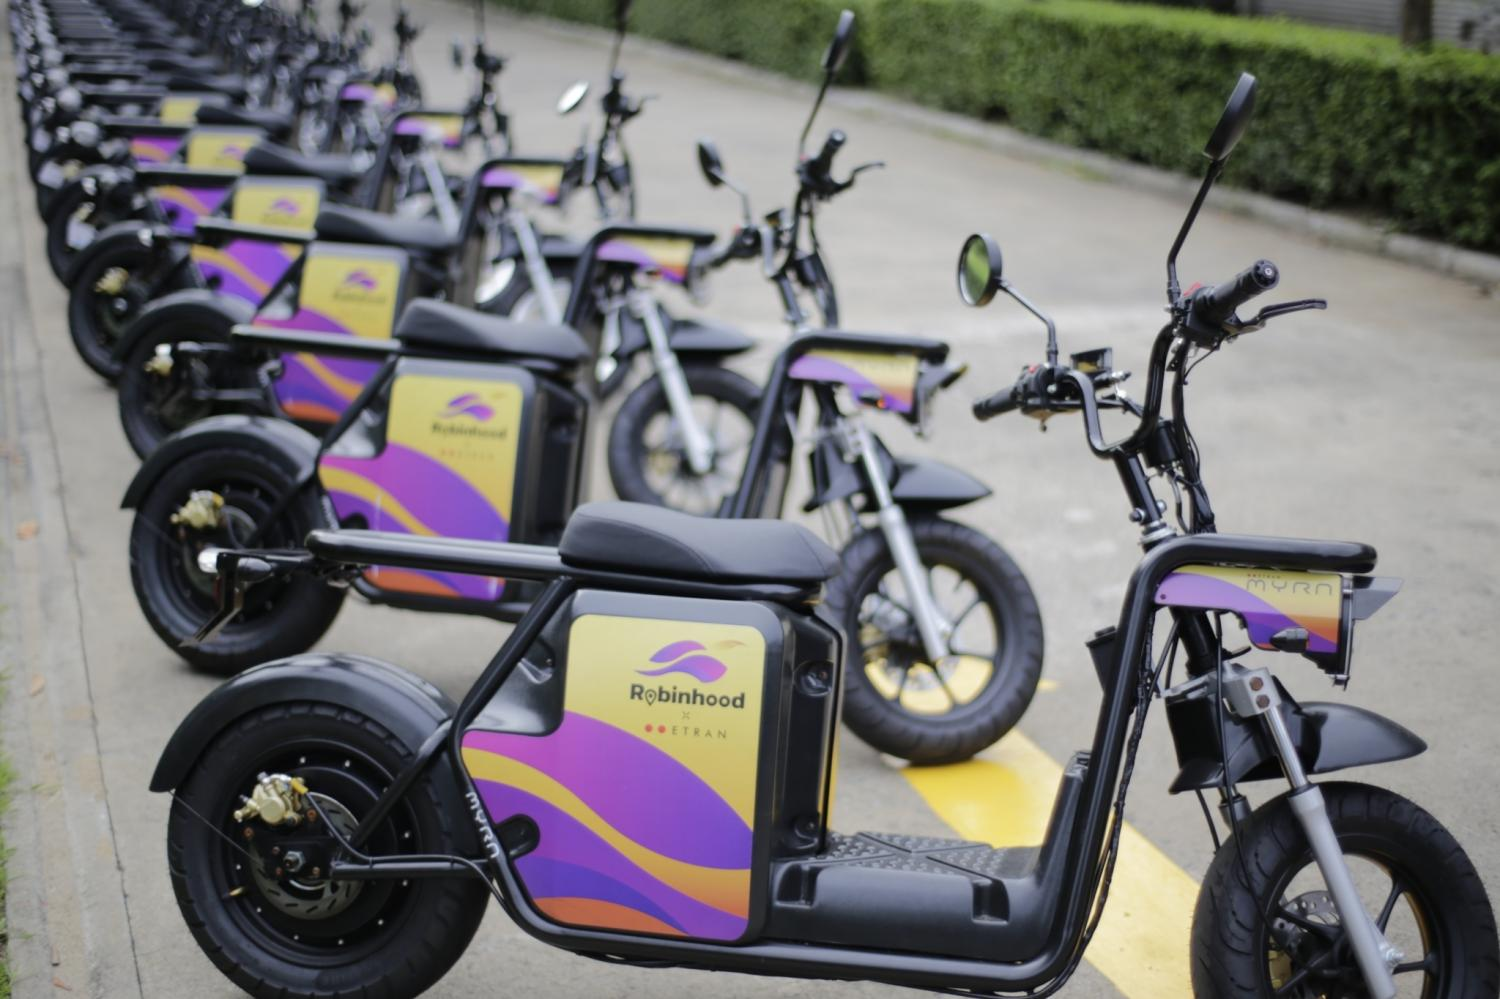 Electric motorcycles, developed by Etran (Thailand), will be sold to riders under Robinhood food delivery platform.